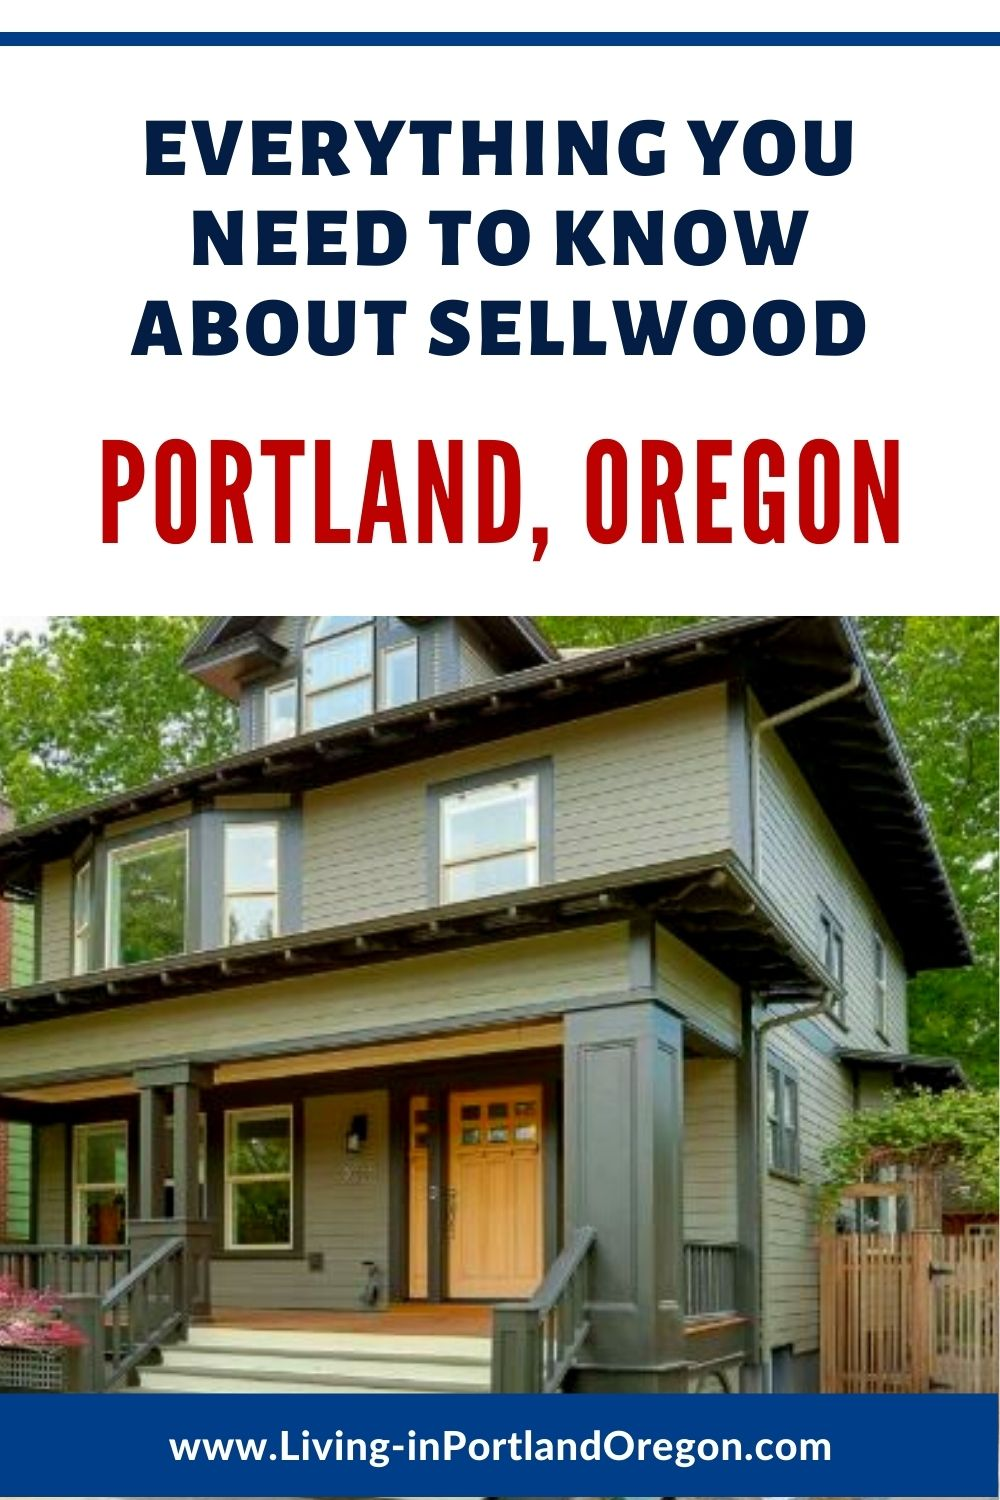 Living in Sellwood Moreland Oregon pins (2)